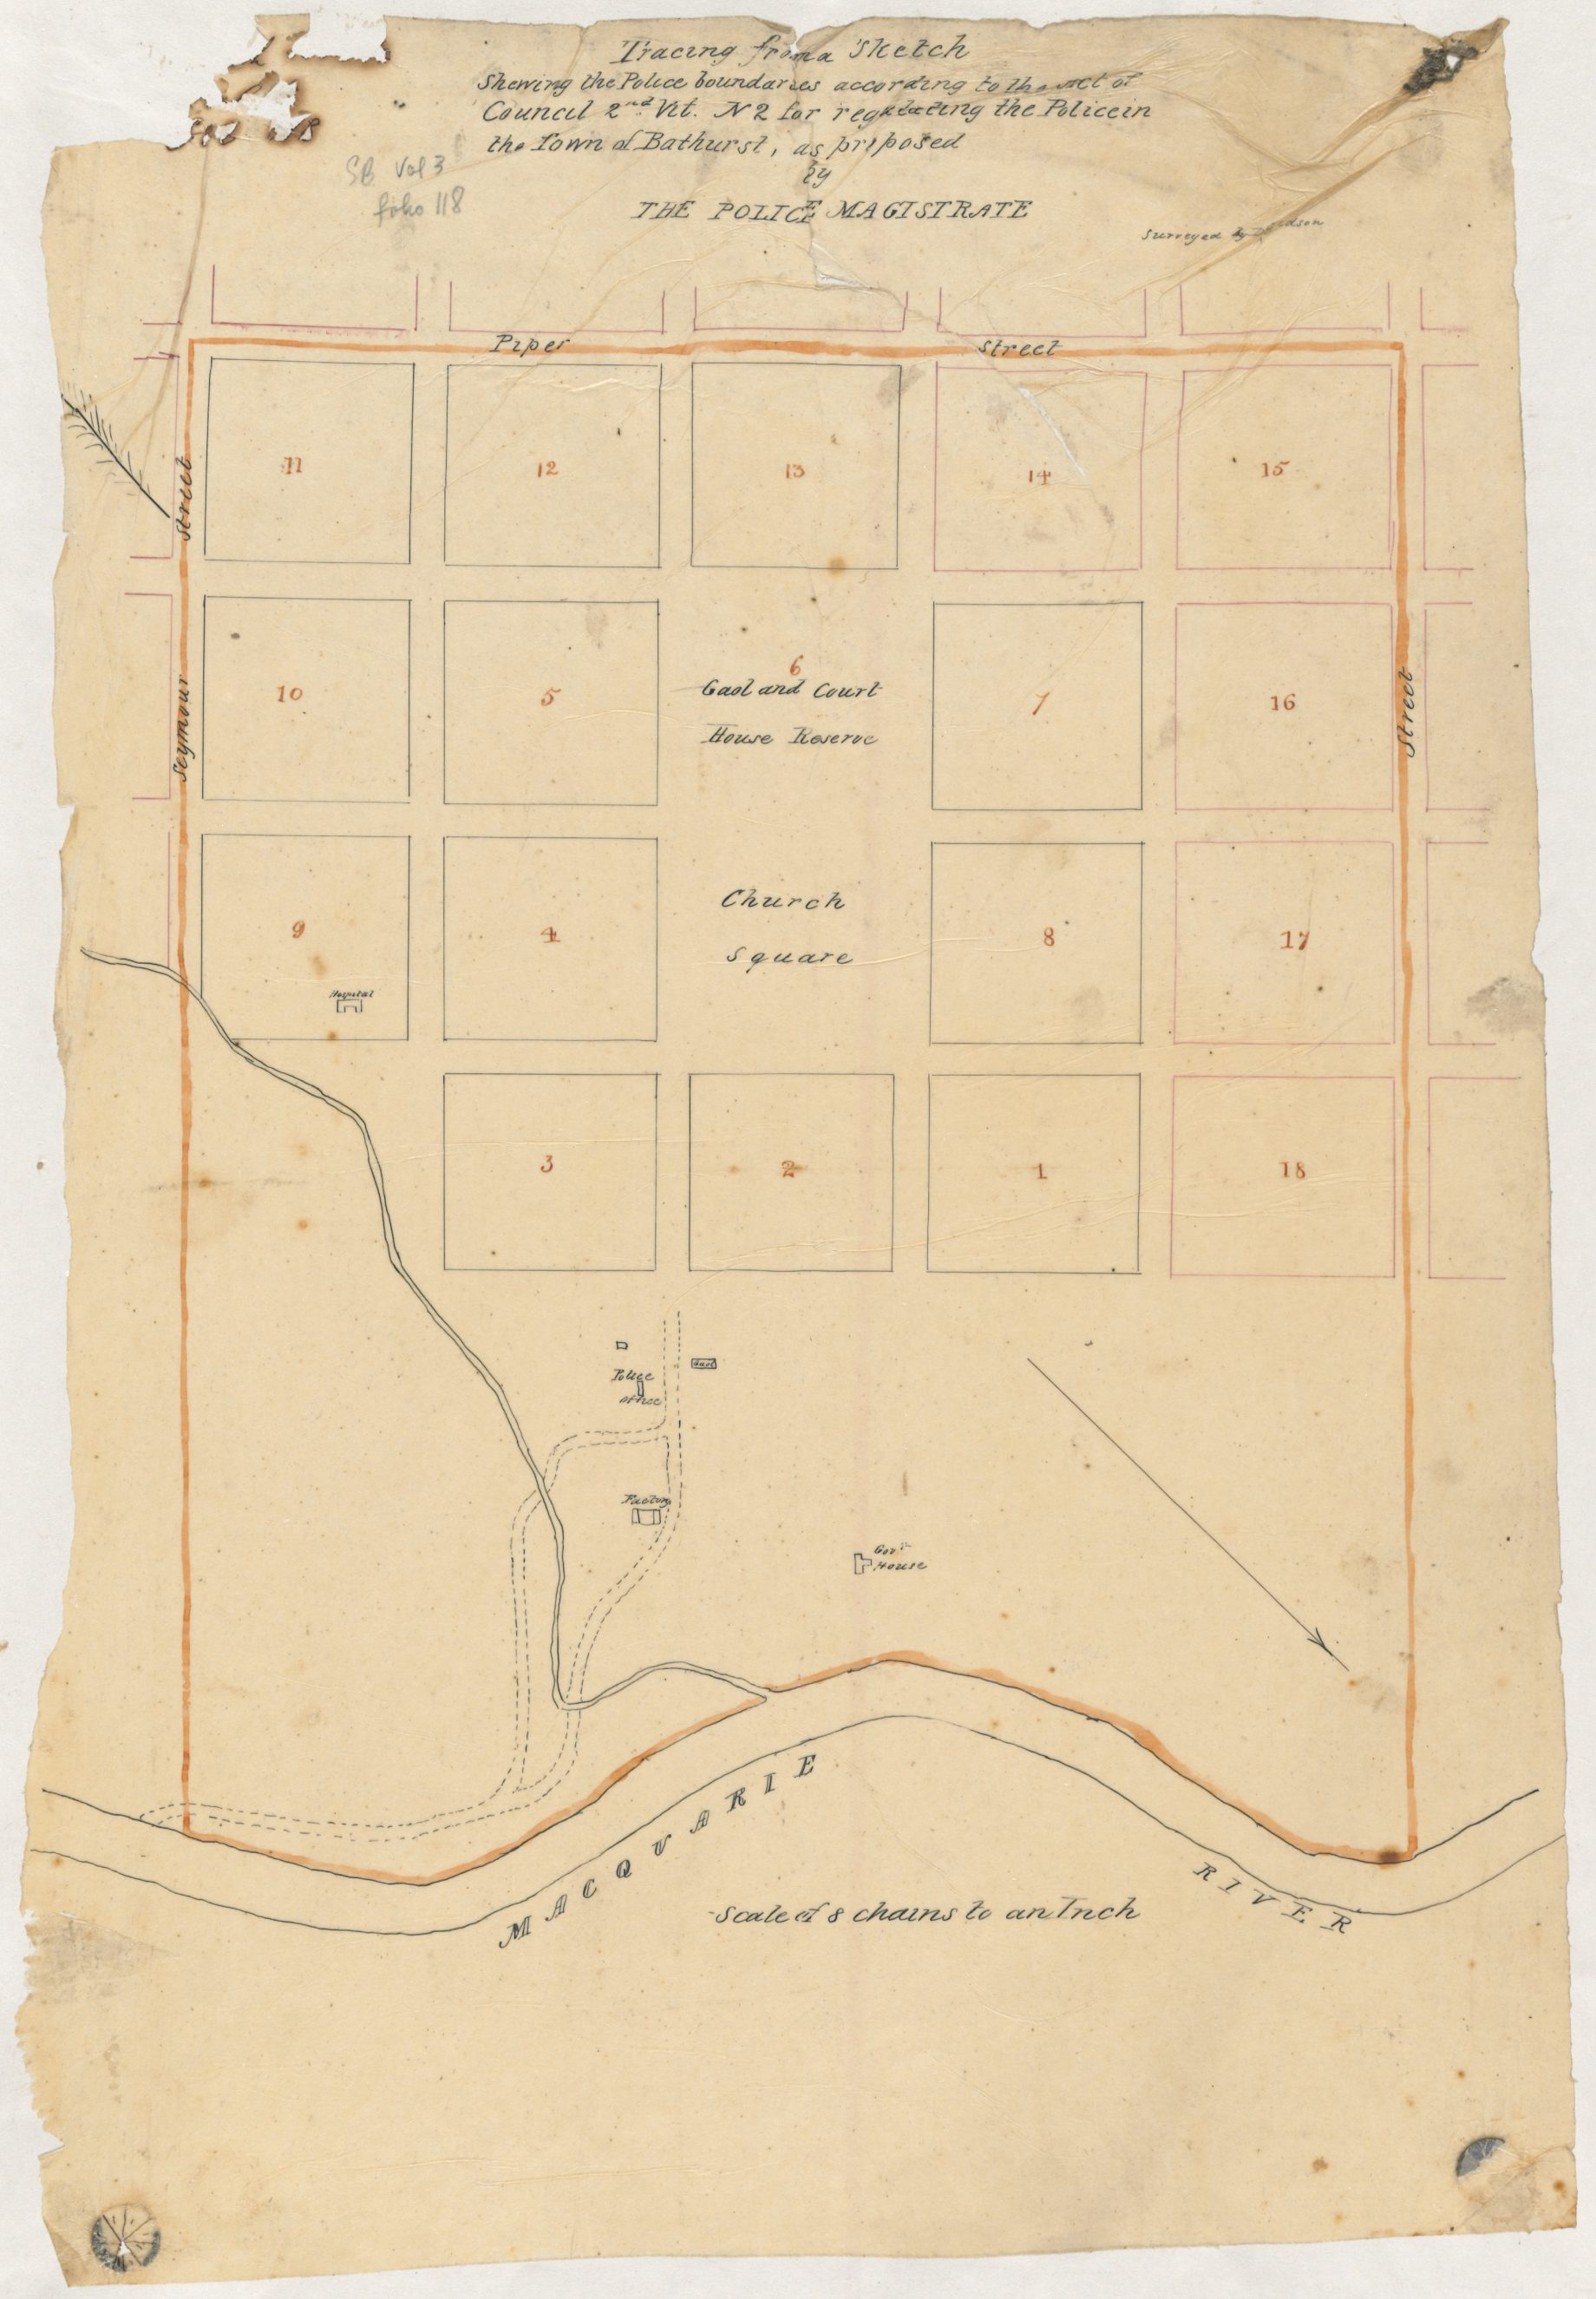 1838 - Bathurst Police boundaries